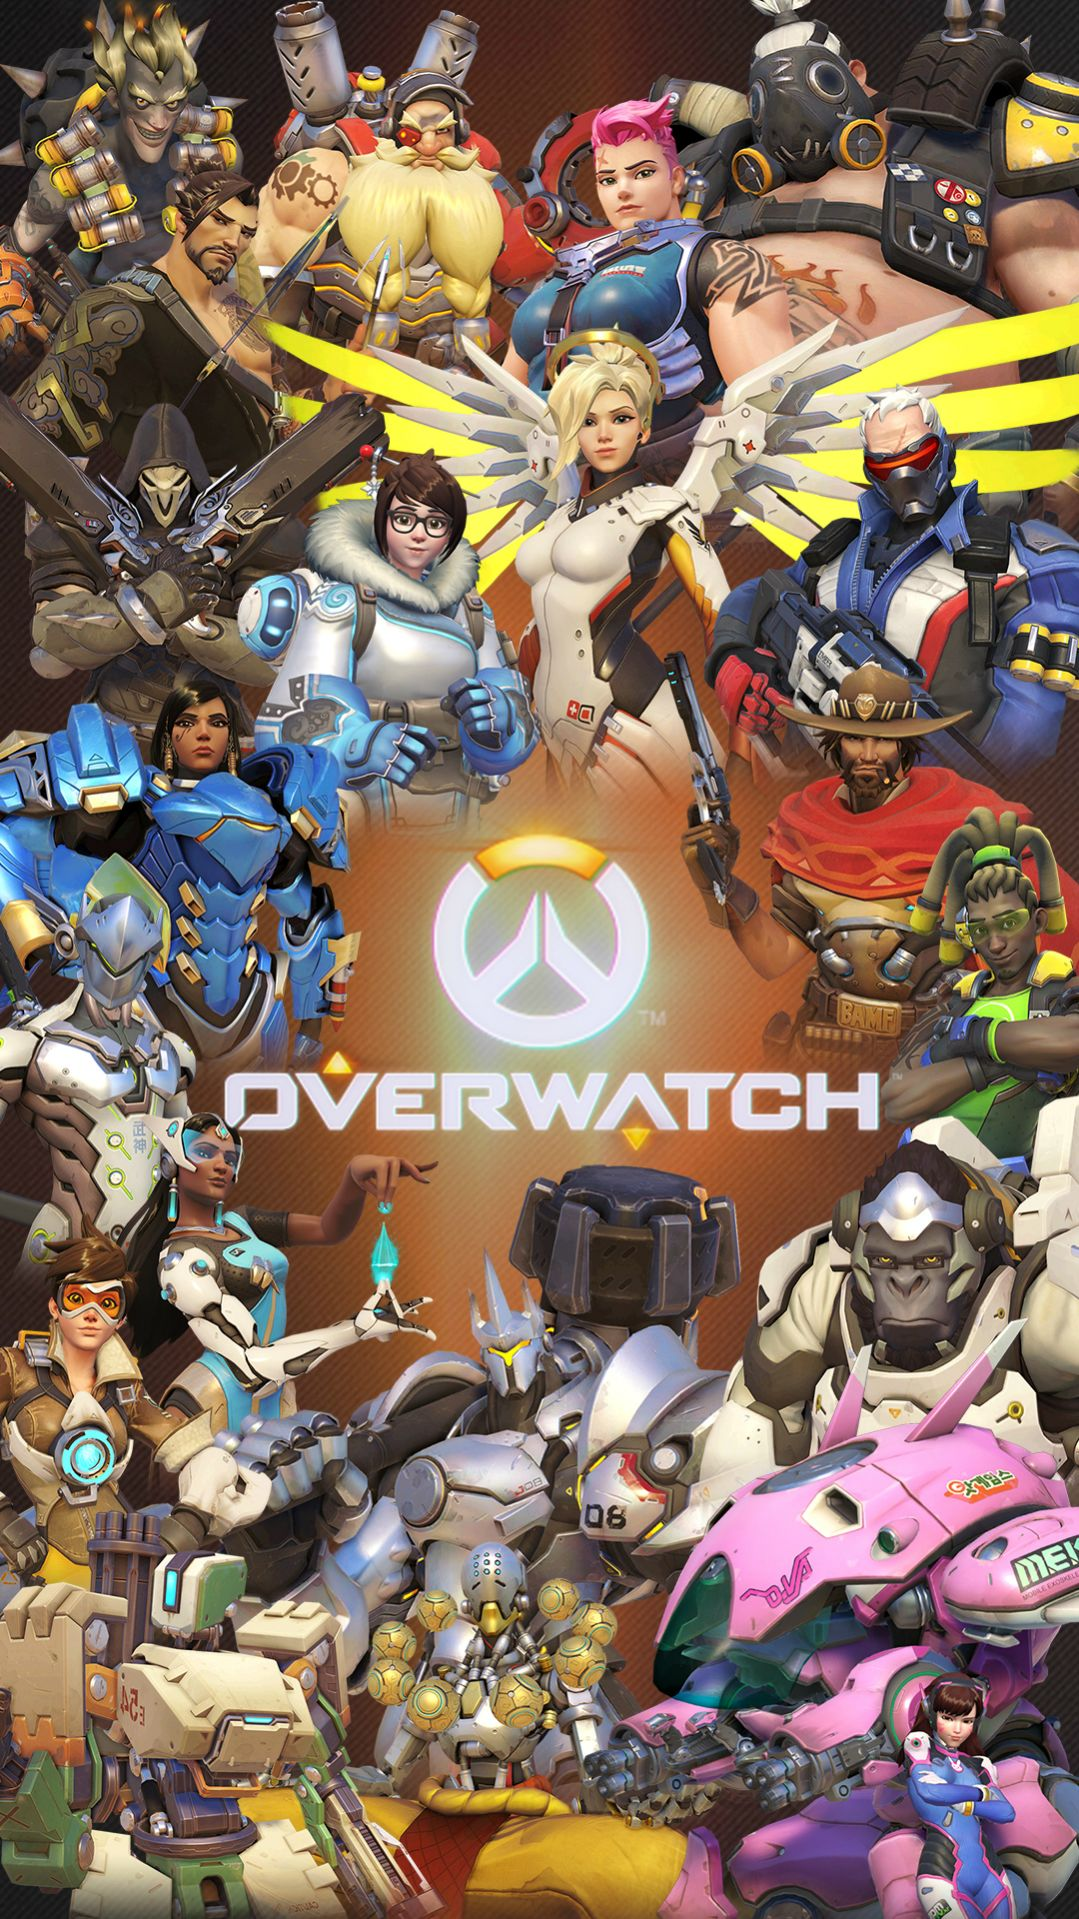 Iphone X Star Wars Wallpaper Fondos De Overwatch Para Android E Iphone Wallpapers